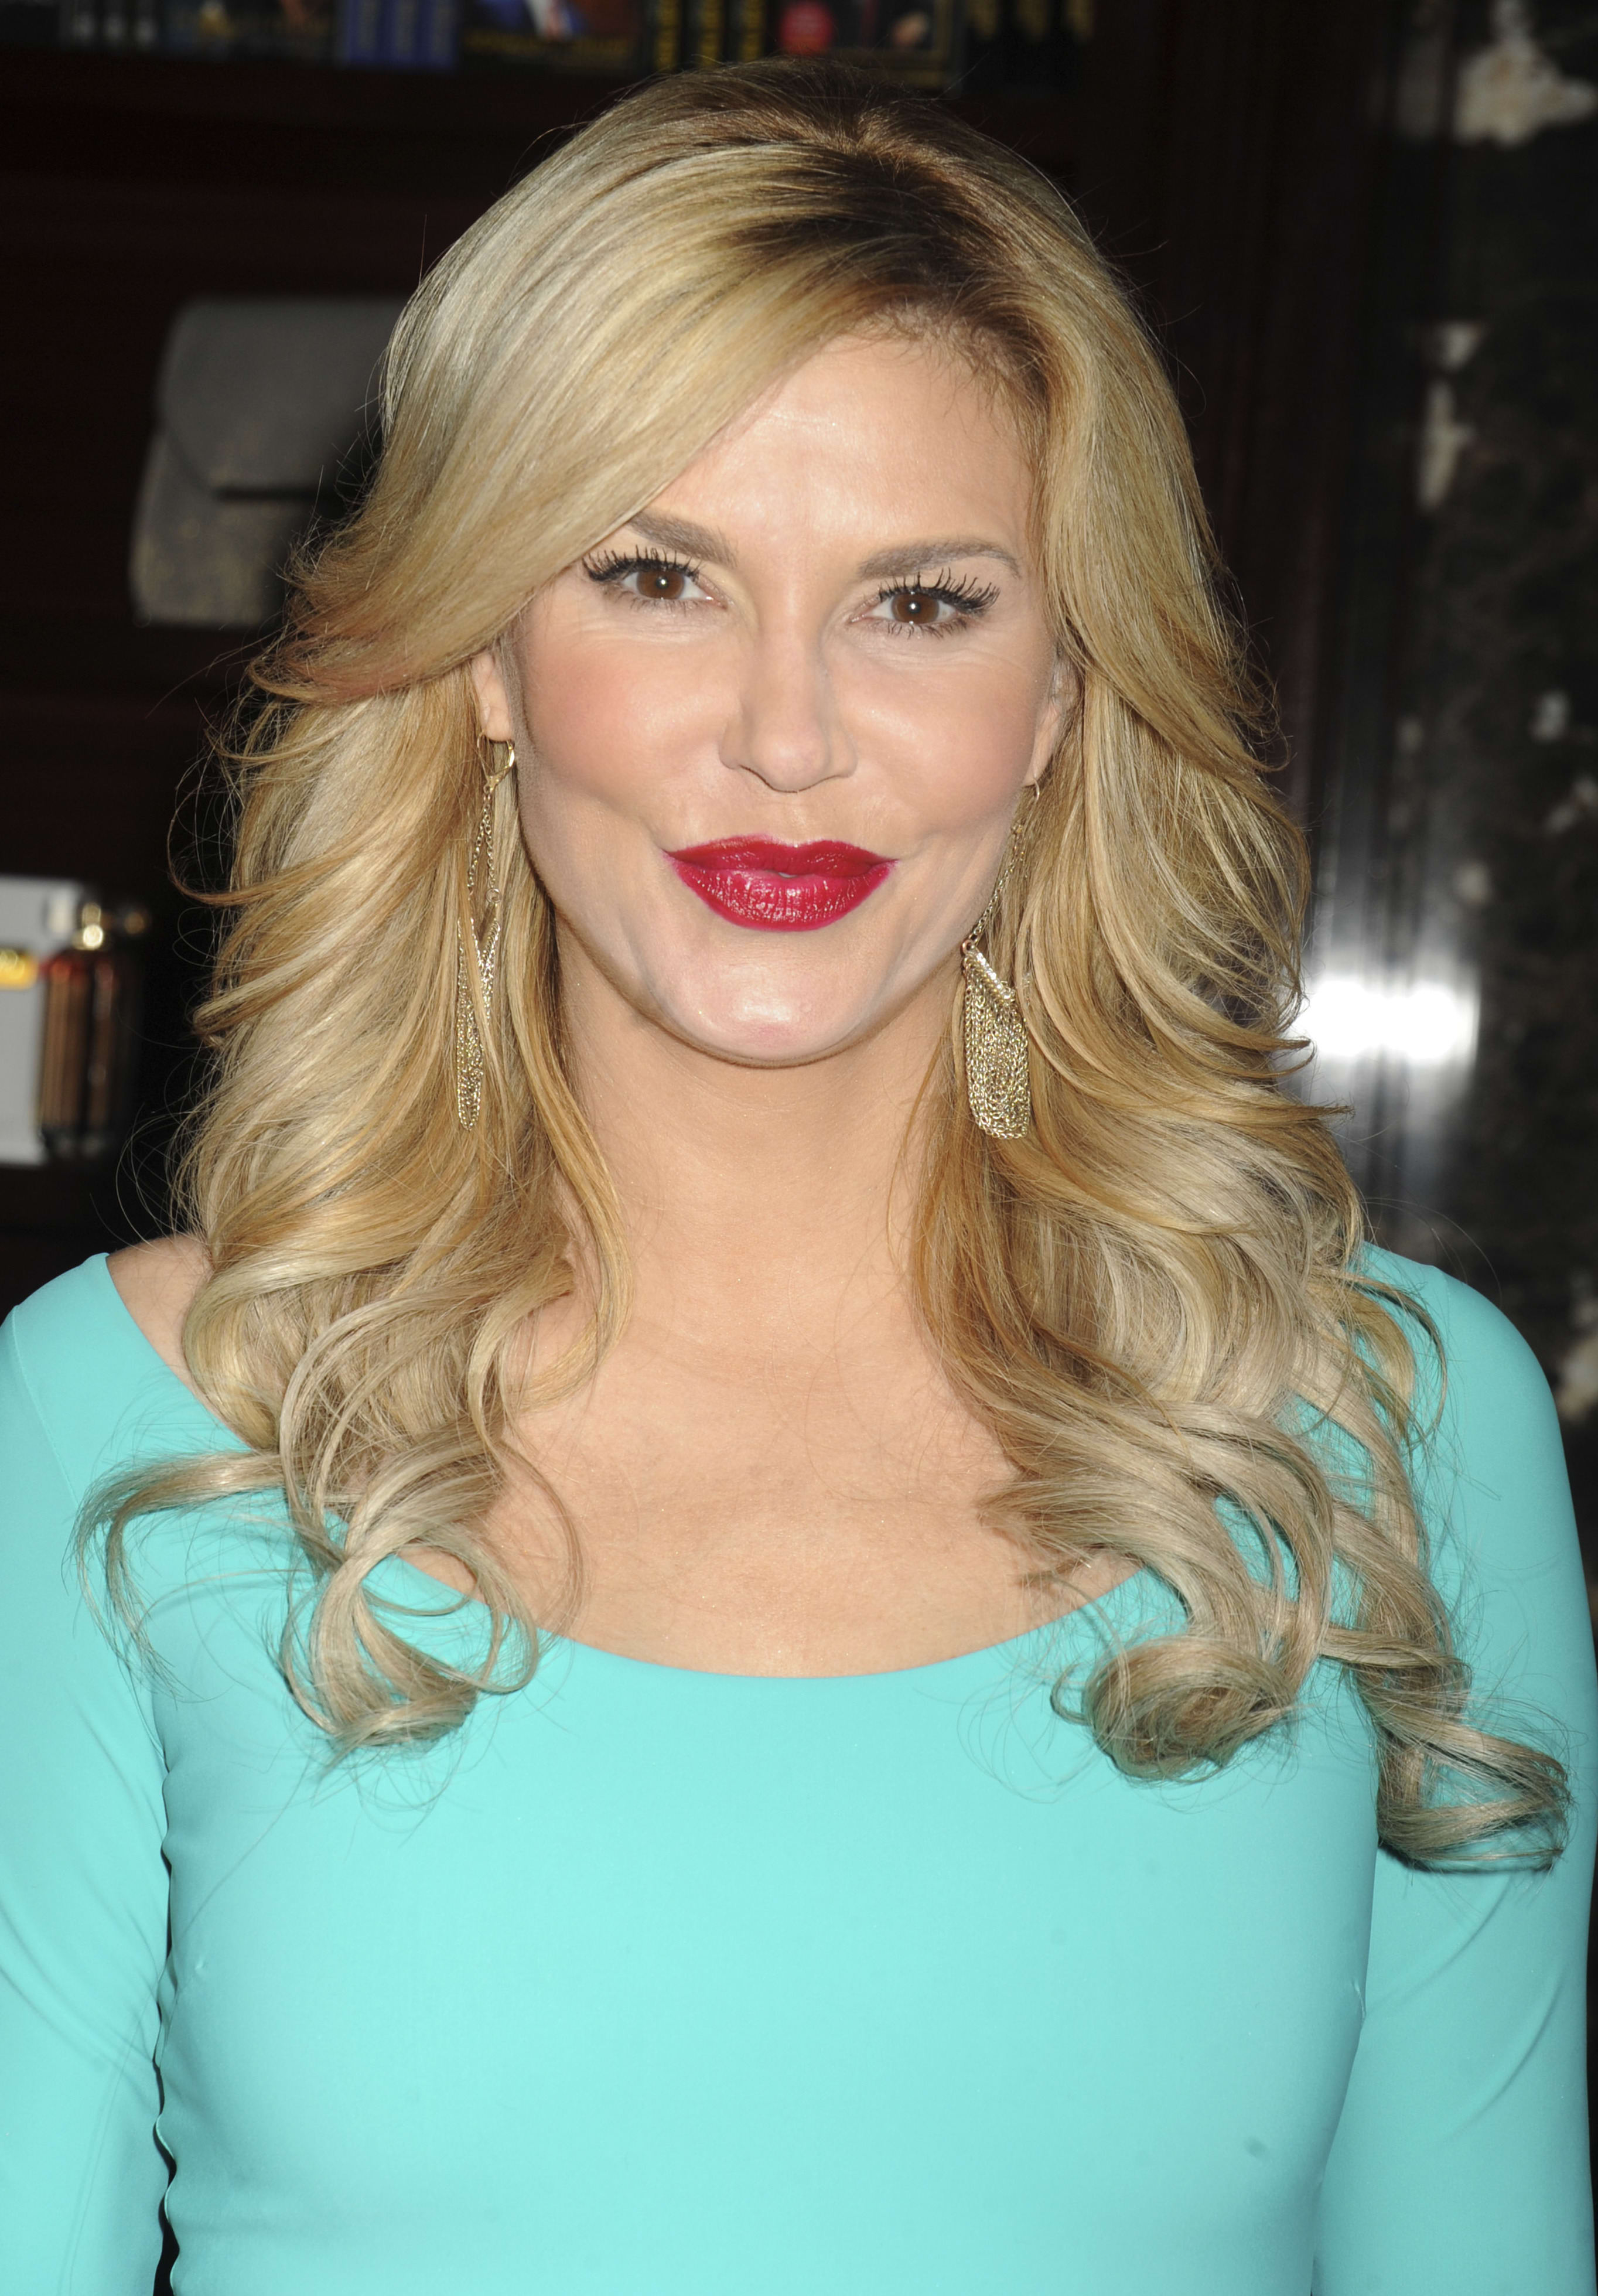 Brandi Glanville: Not A LesbianMakes Out with Girls Anyway